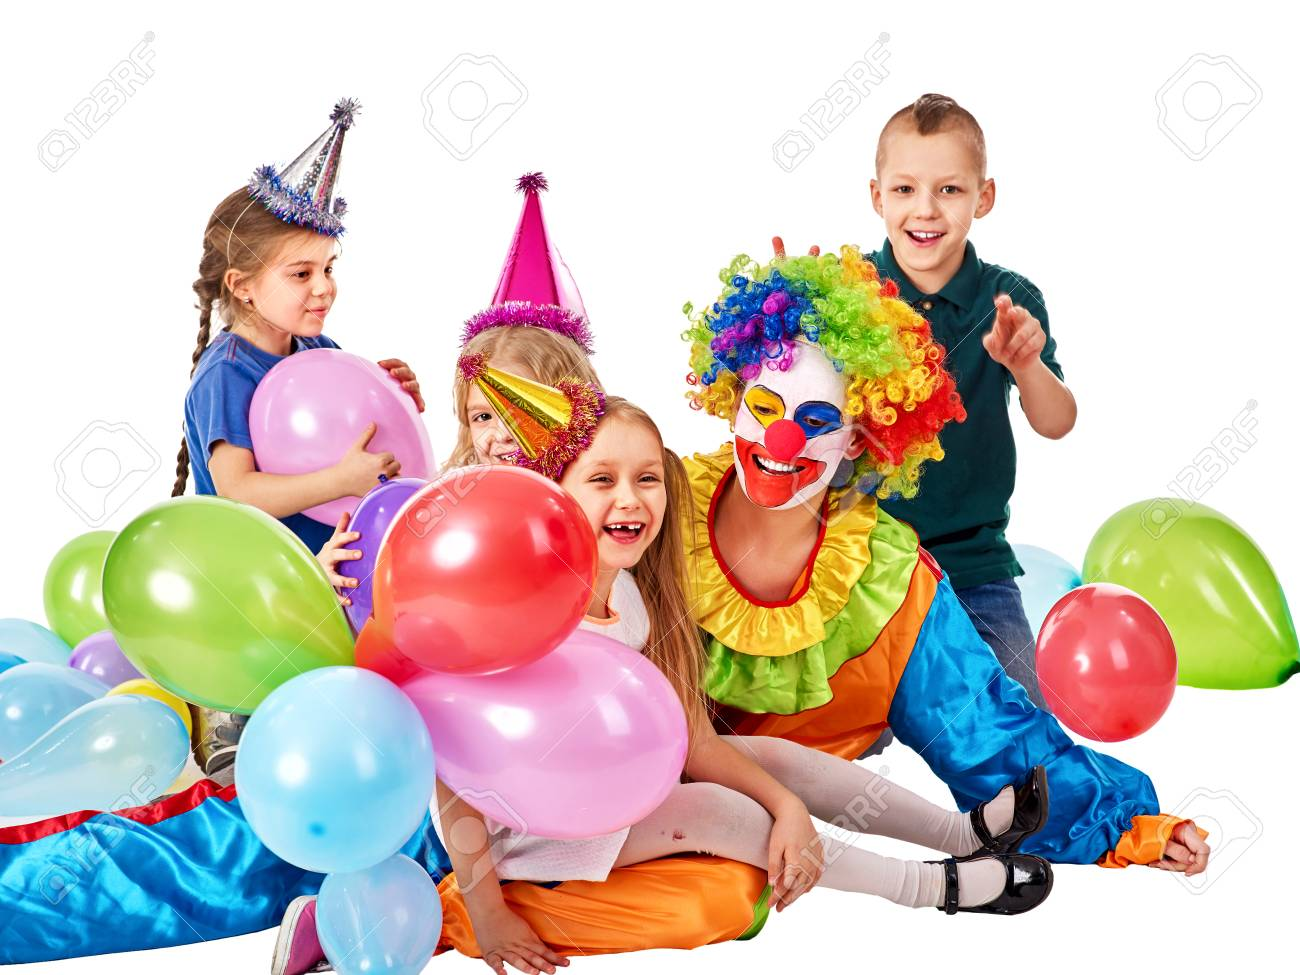 Birthday Child Clown Playing With Children And Bunny Fingers Prank Kid Holiday Cakes Celebratory